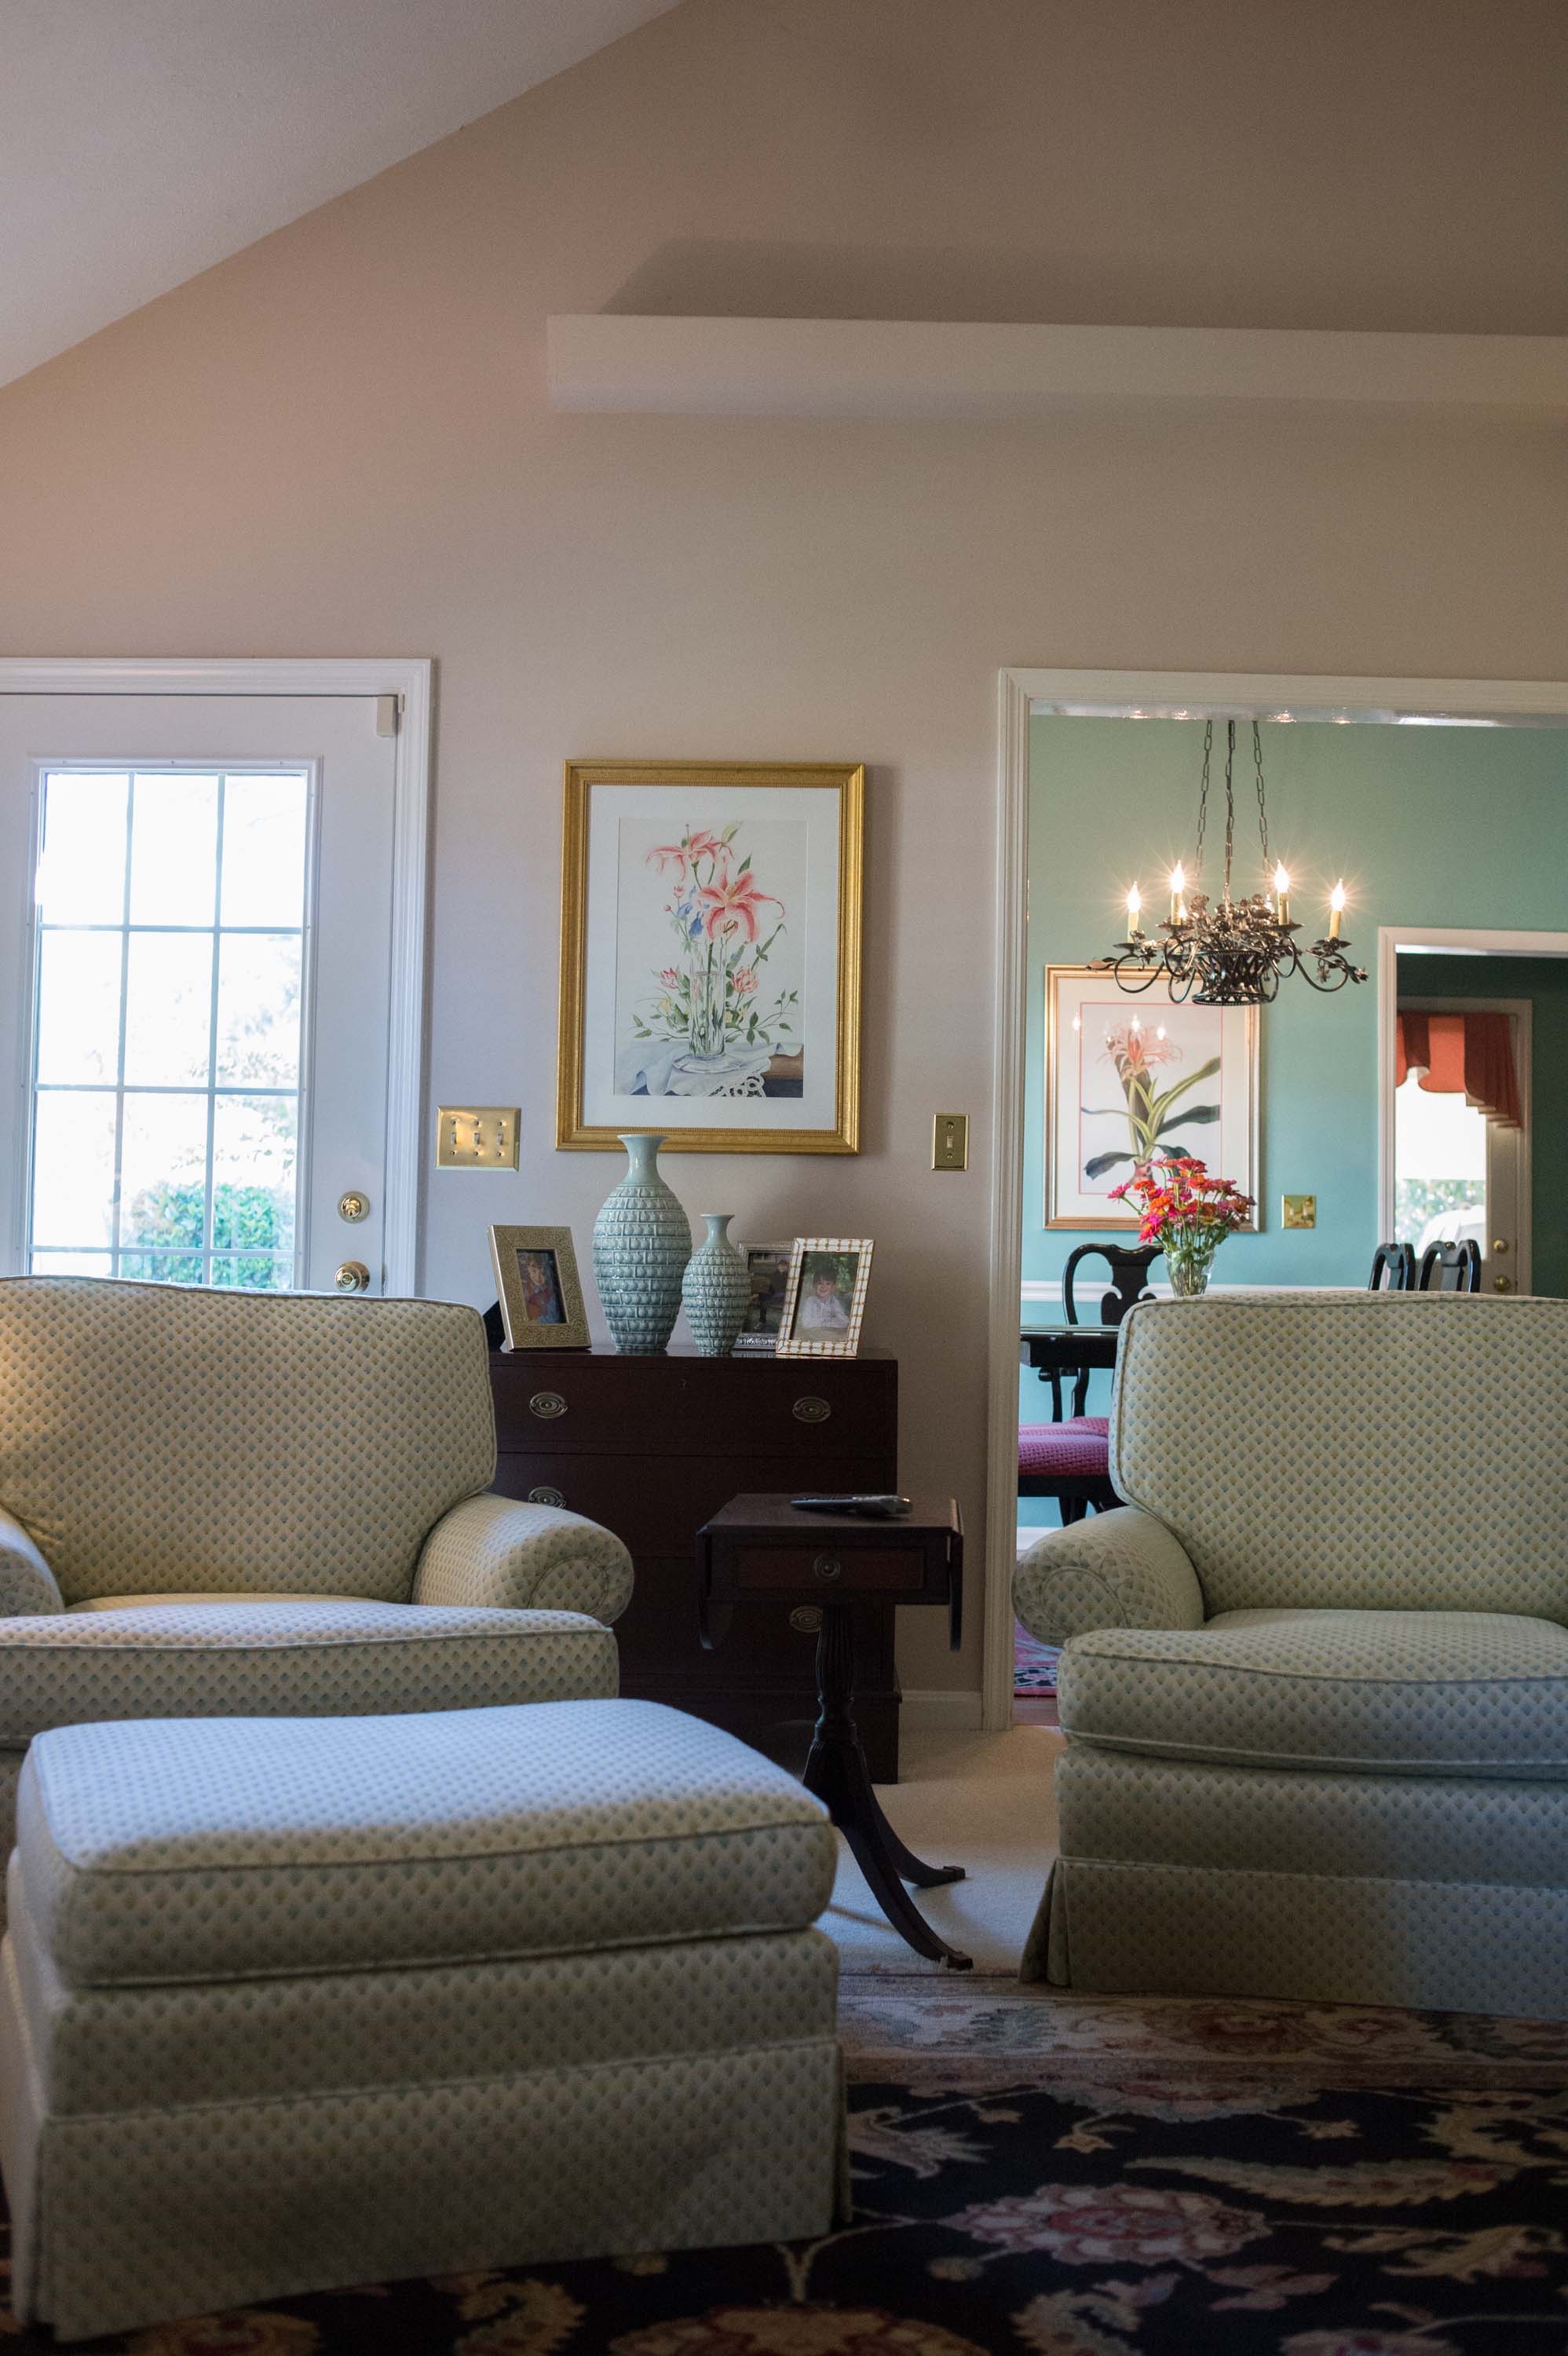 Large Custom Chair with Area Rug, Artwork & Lamp